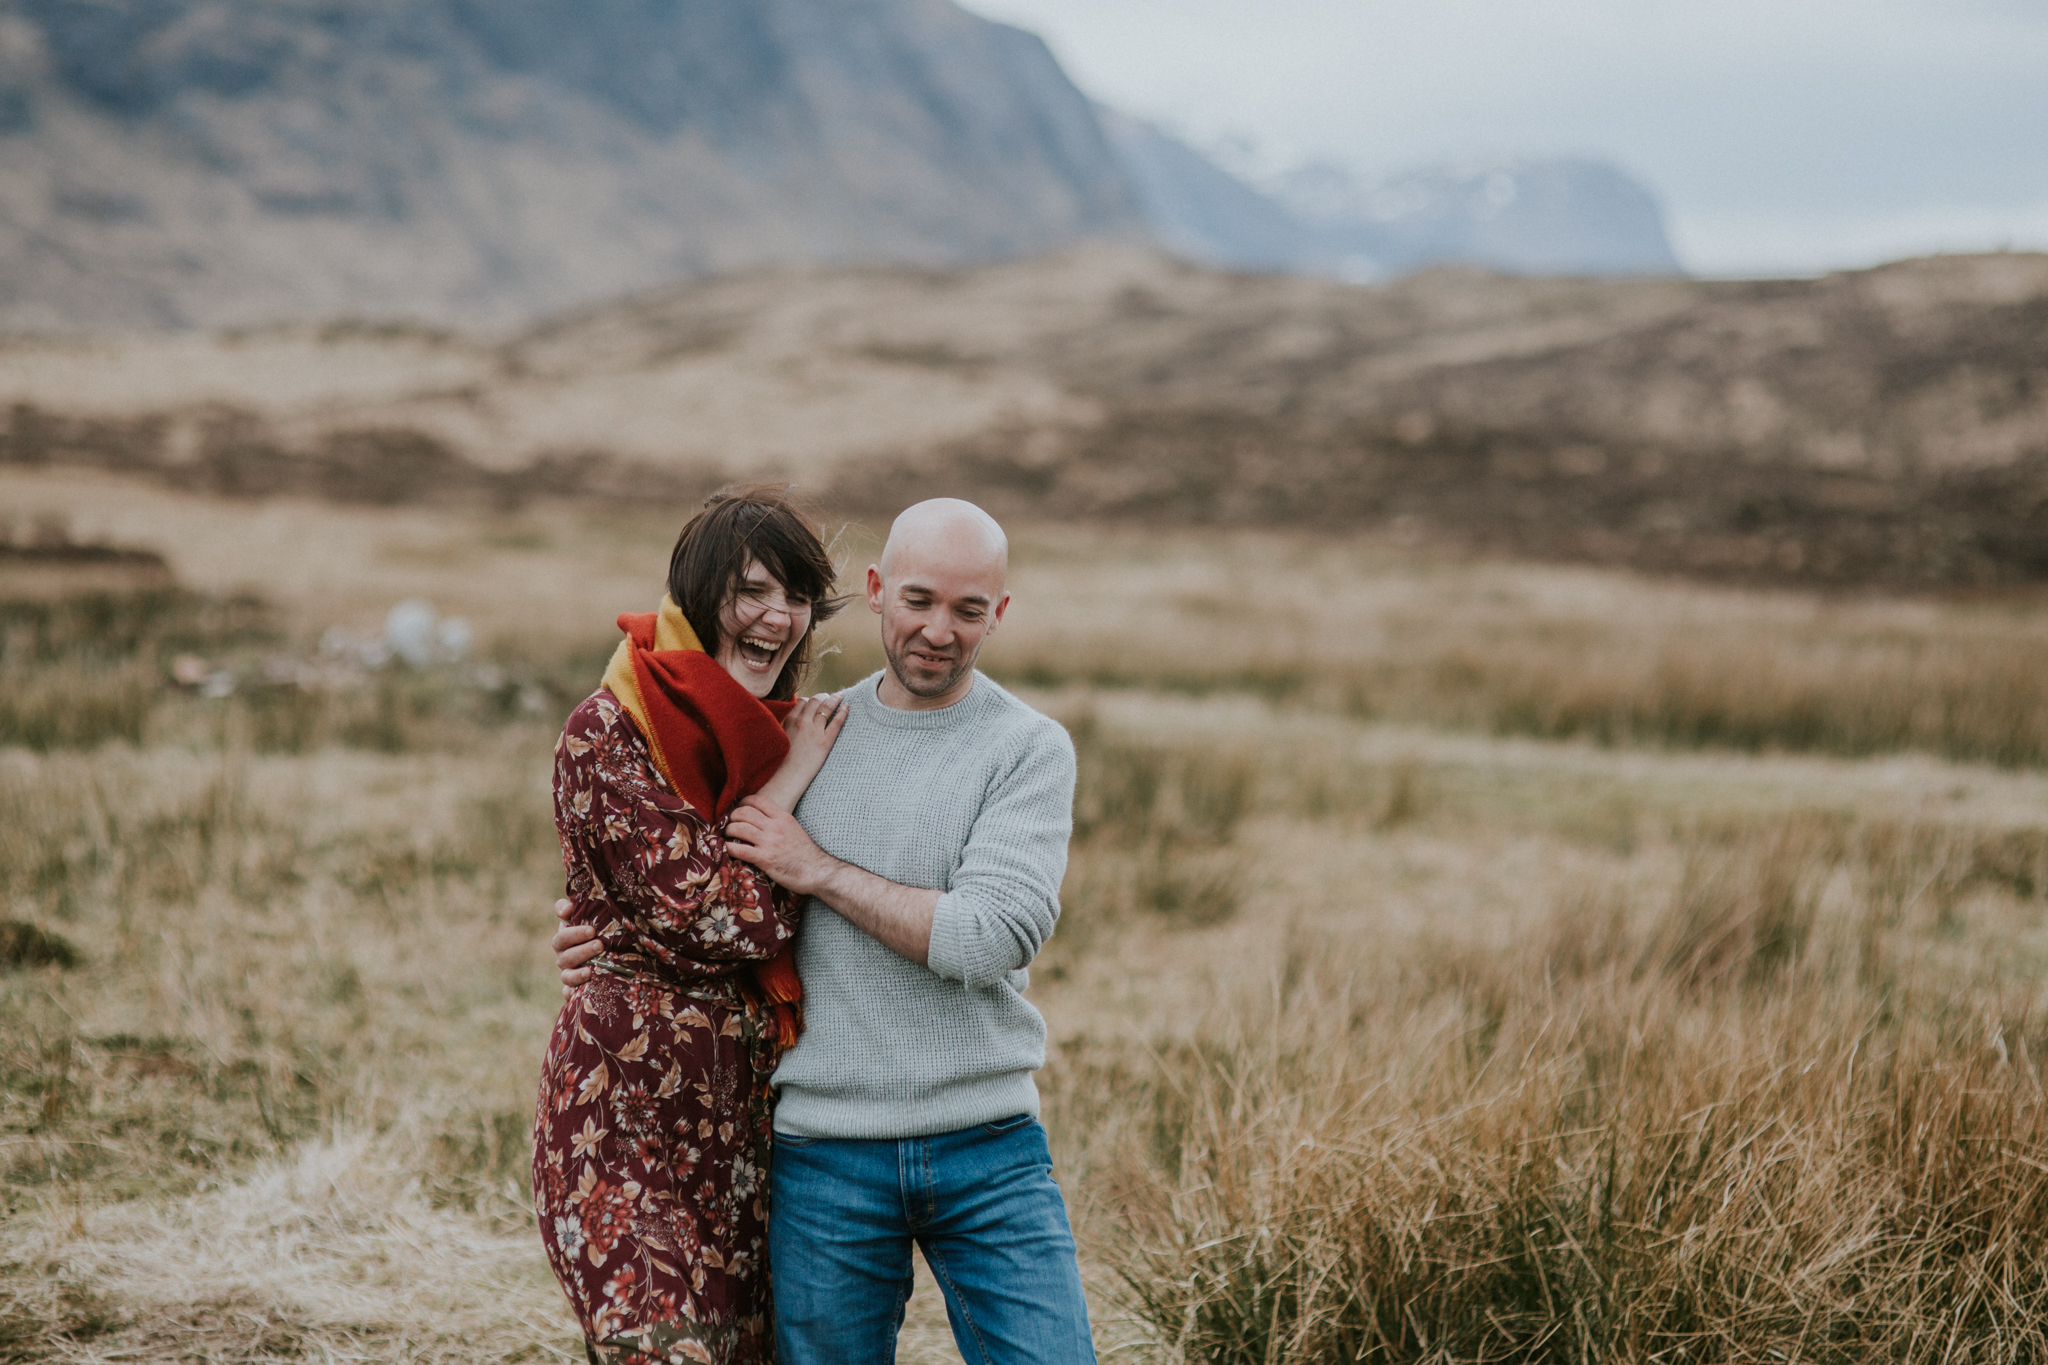 The bride is extremely laughing in the Glencoe